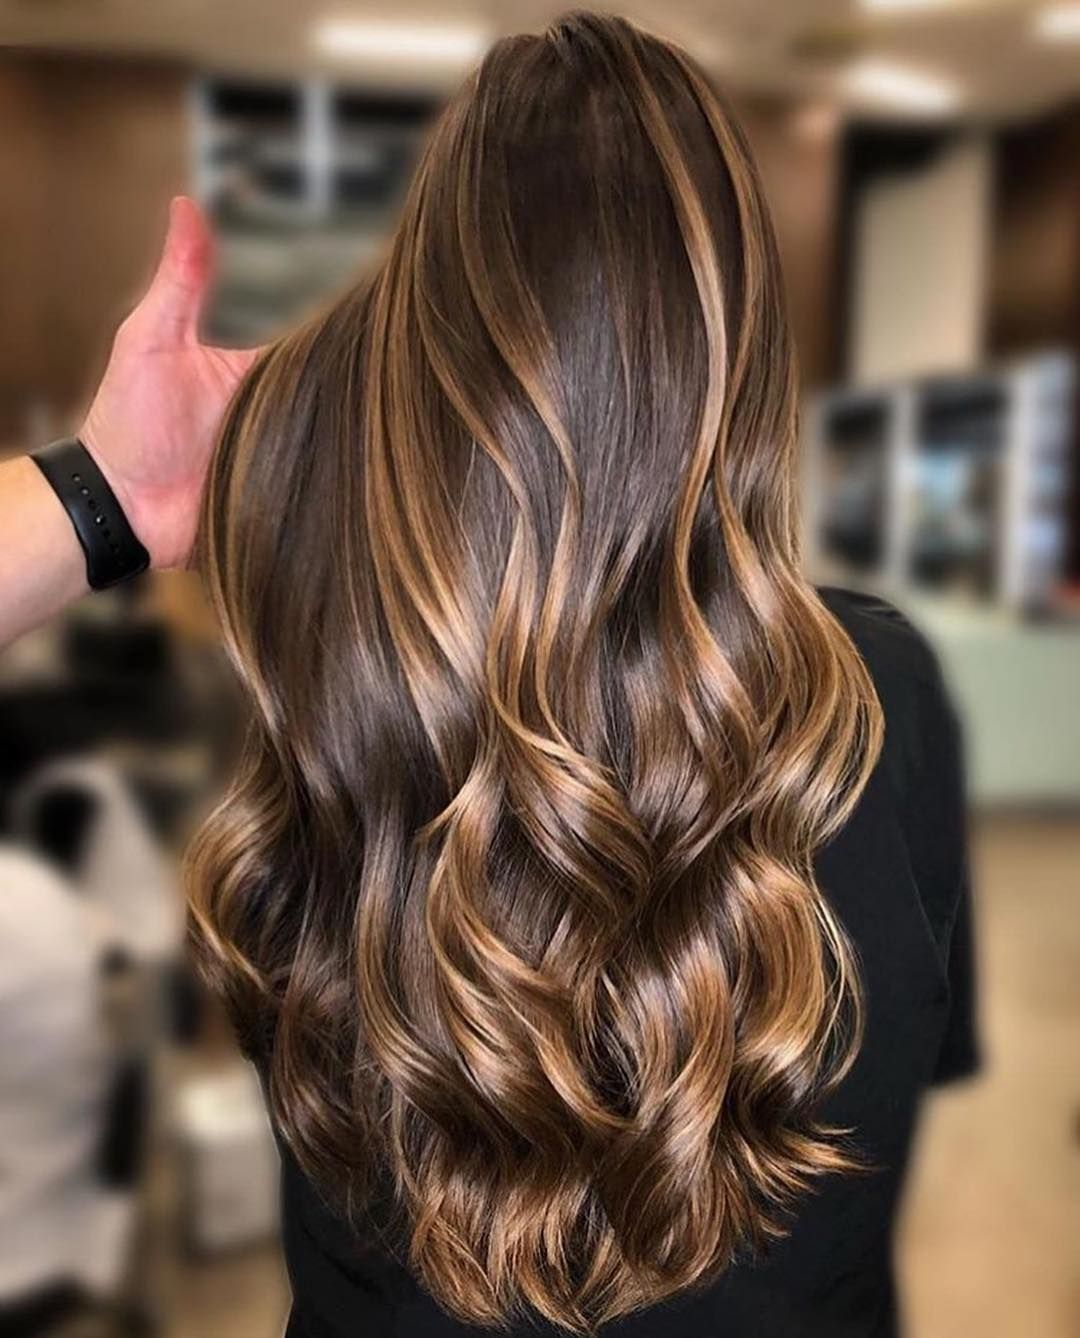 Balayage Inspo On Instagram Caramel Vibesss By Muriloperlyoficial Hair Styles Long Hair Styles Balayage Hair